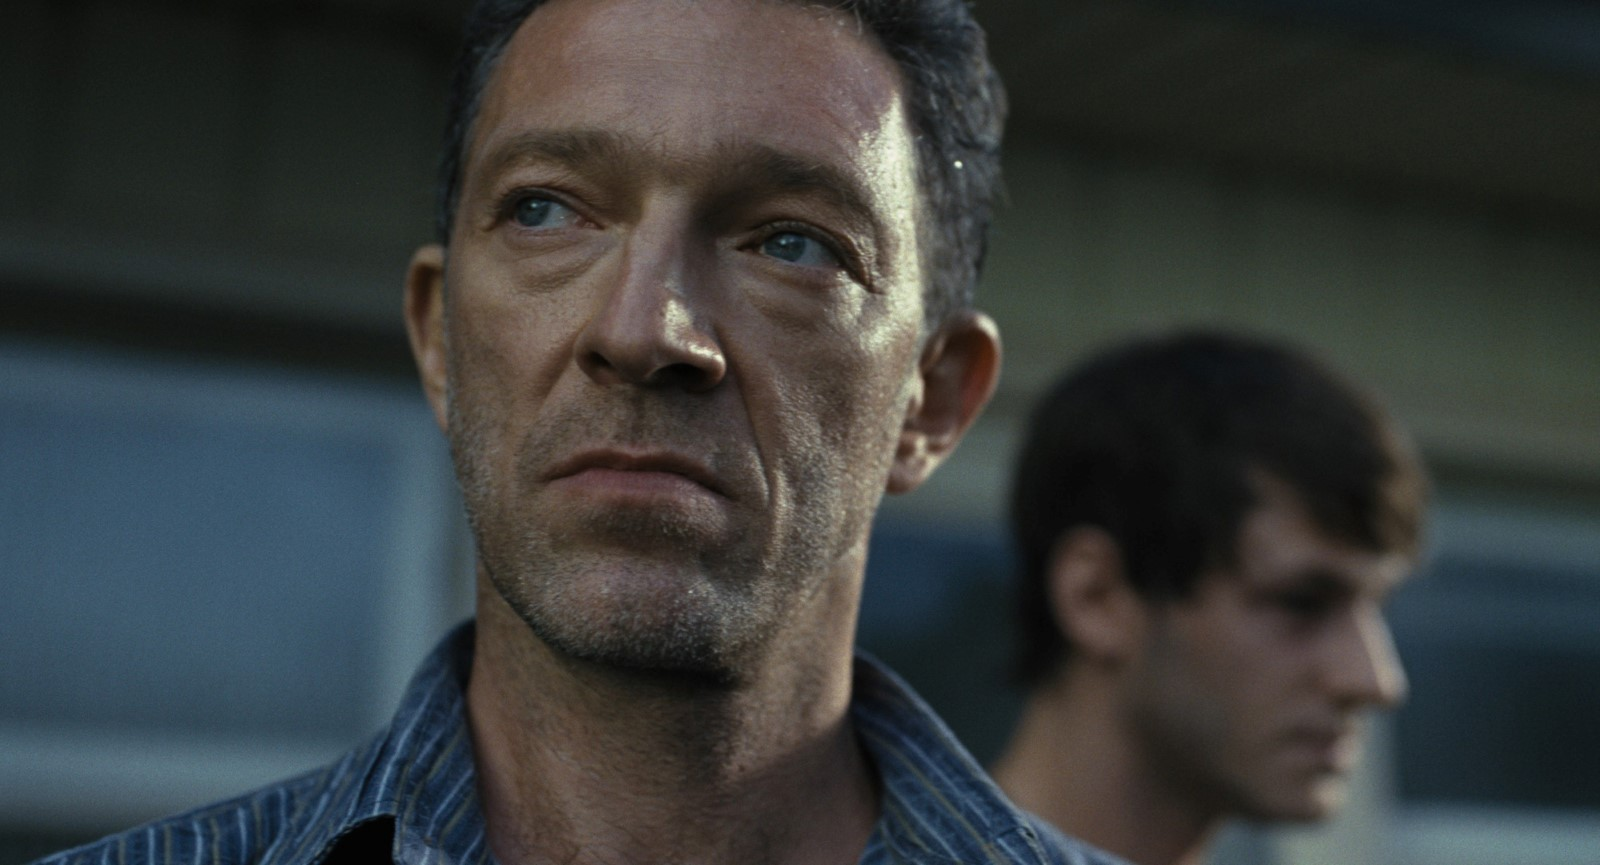 Just the end of the world on Arte: Vincent Cassel has replaced a great actor in the casting - CinéSéries